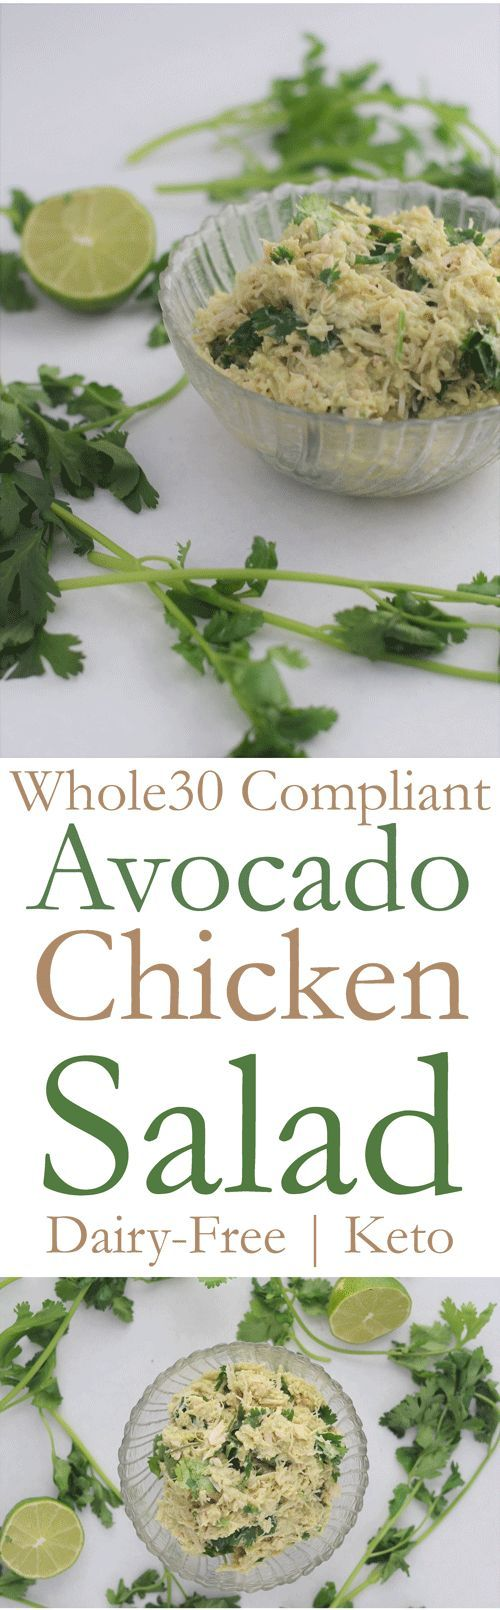 5-minute creamy avocado chicken salad! WHOLE30 compliant, paleo, low-carb and keto friendly!!